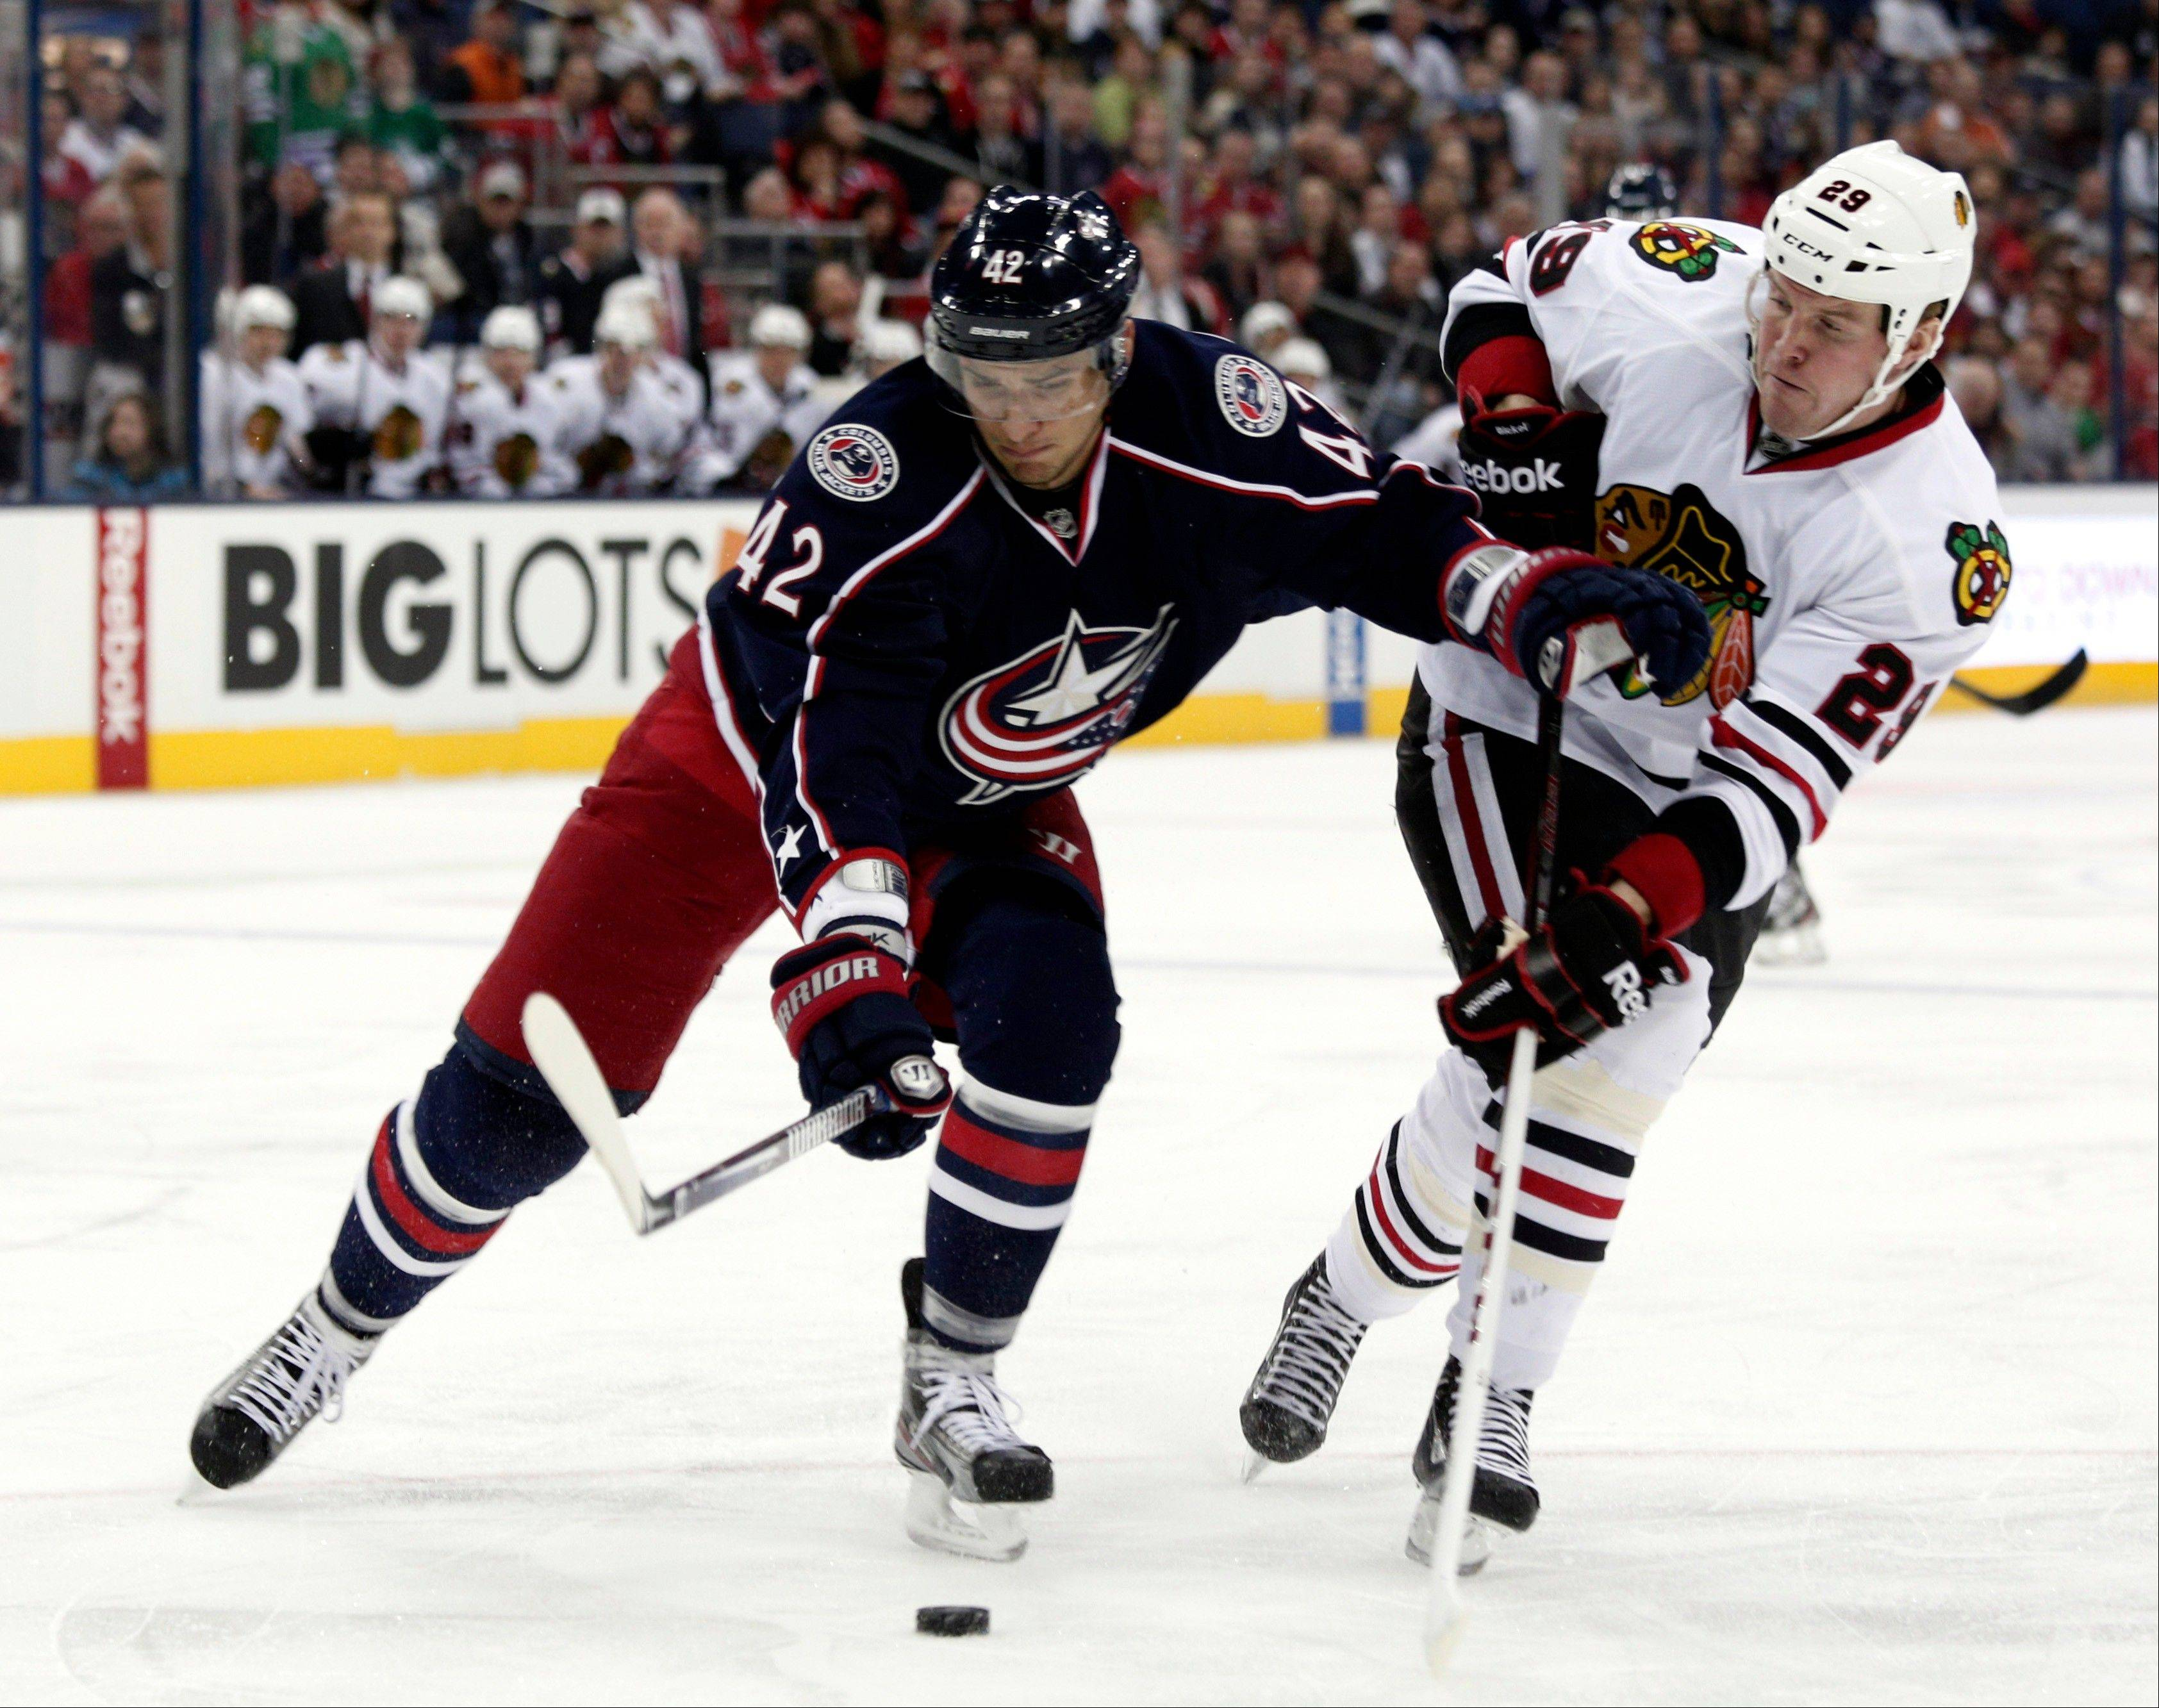 Columbus Blue Jackets' Artem Anisimov, left, of Russia, works for the puck against Chicago Blackhawks' Bryan Bickell during the first period.